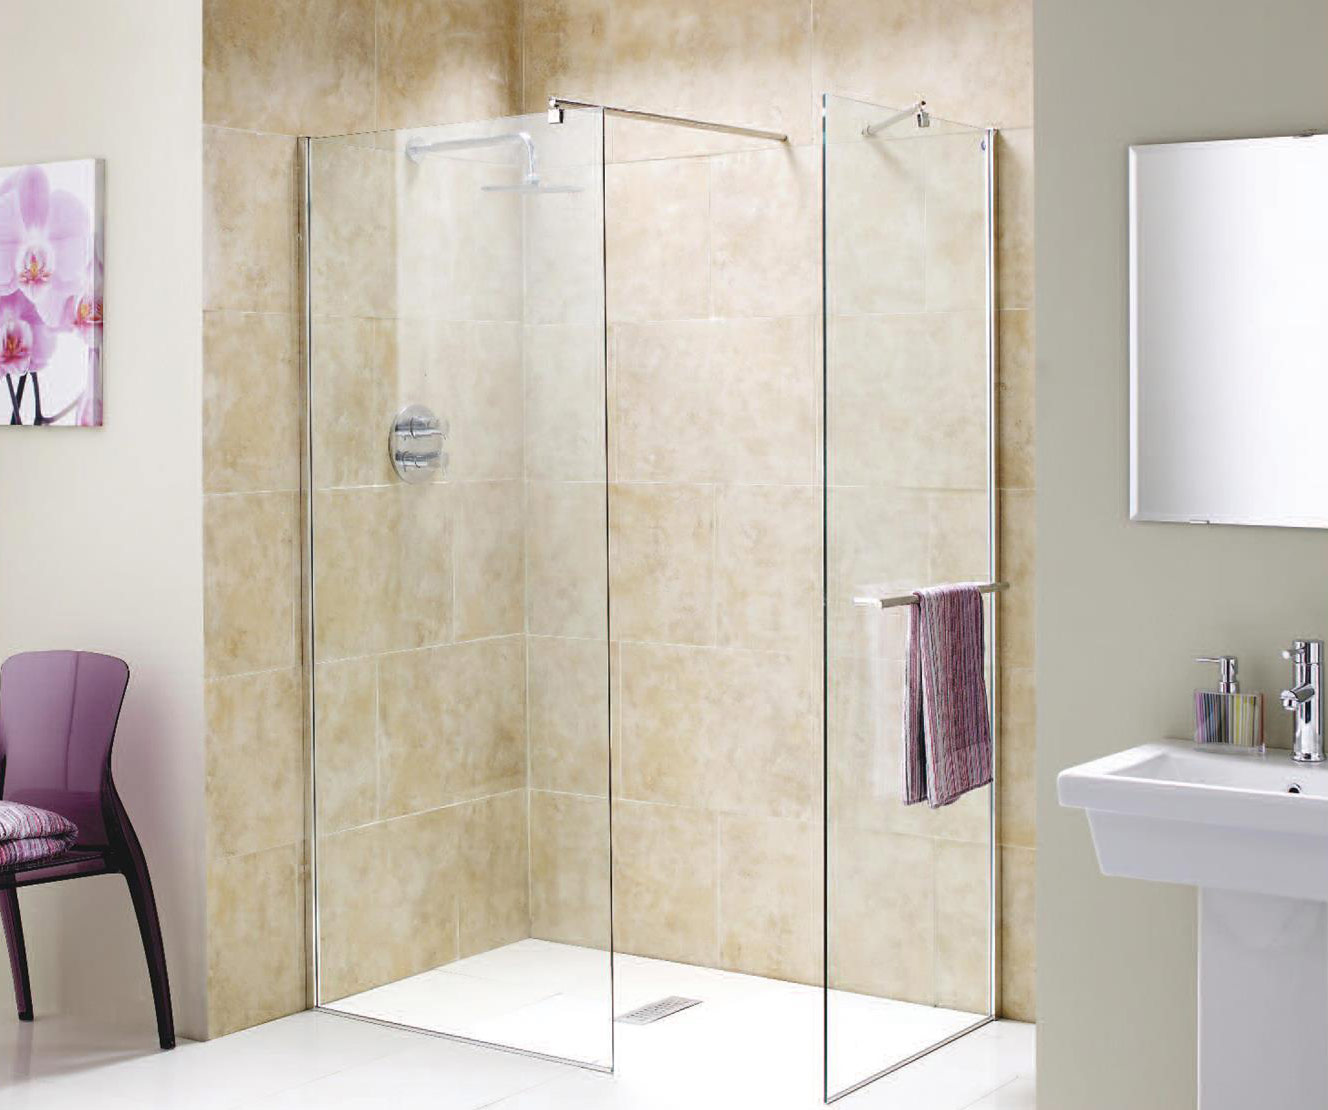 Chaniti Wetroom 2